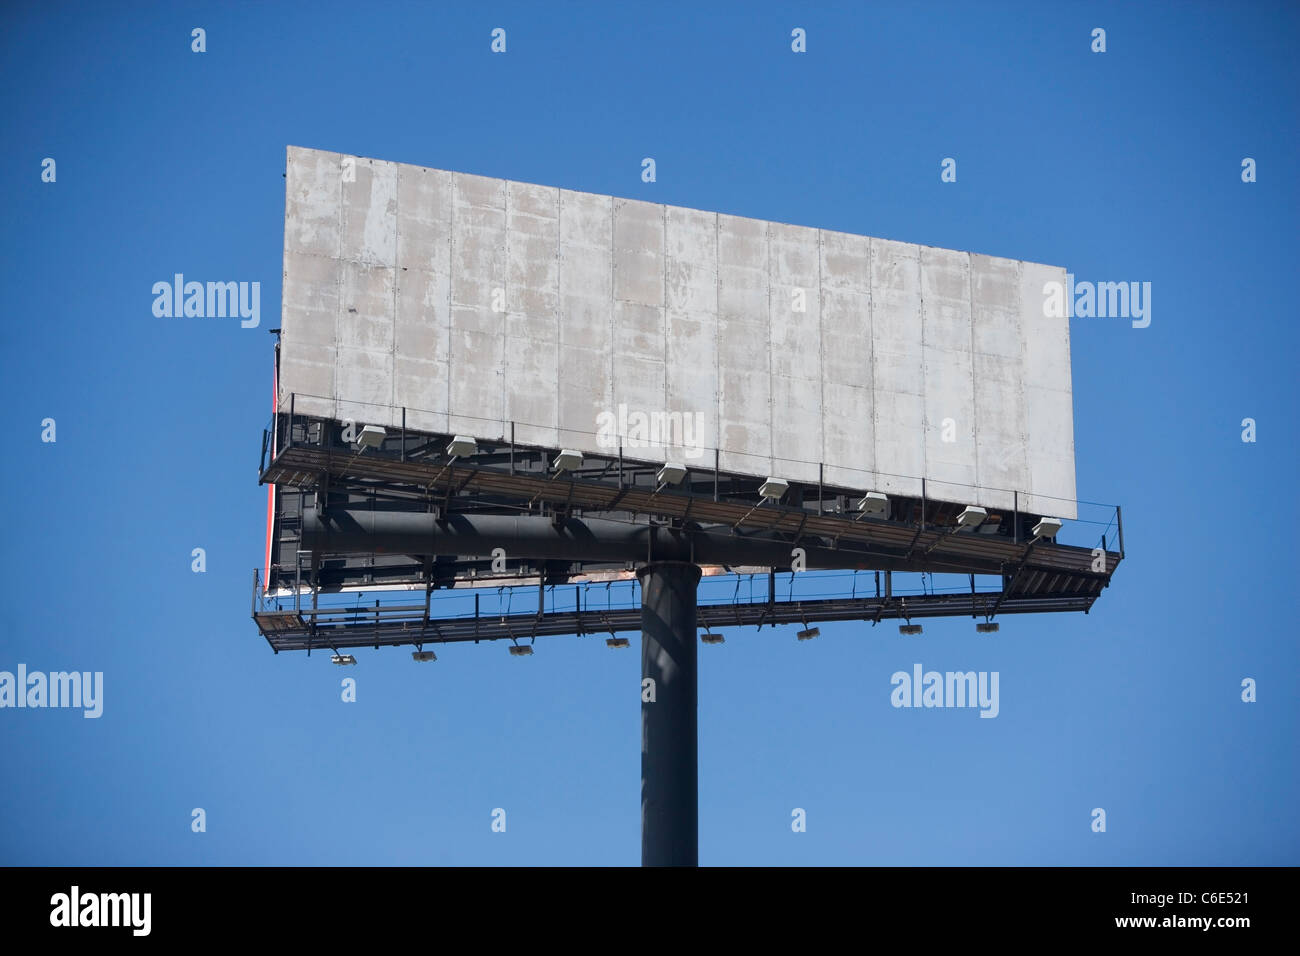 USA, New York State, New York City, empty billboard against clear sky - Stock Image